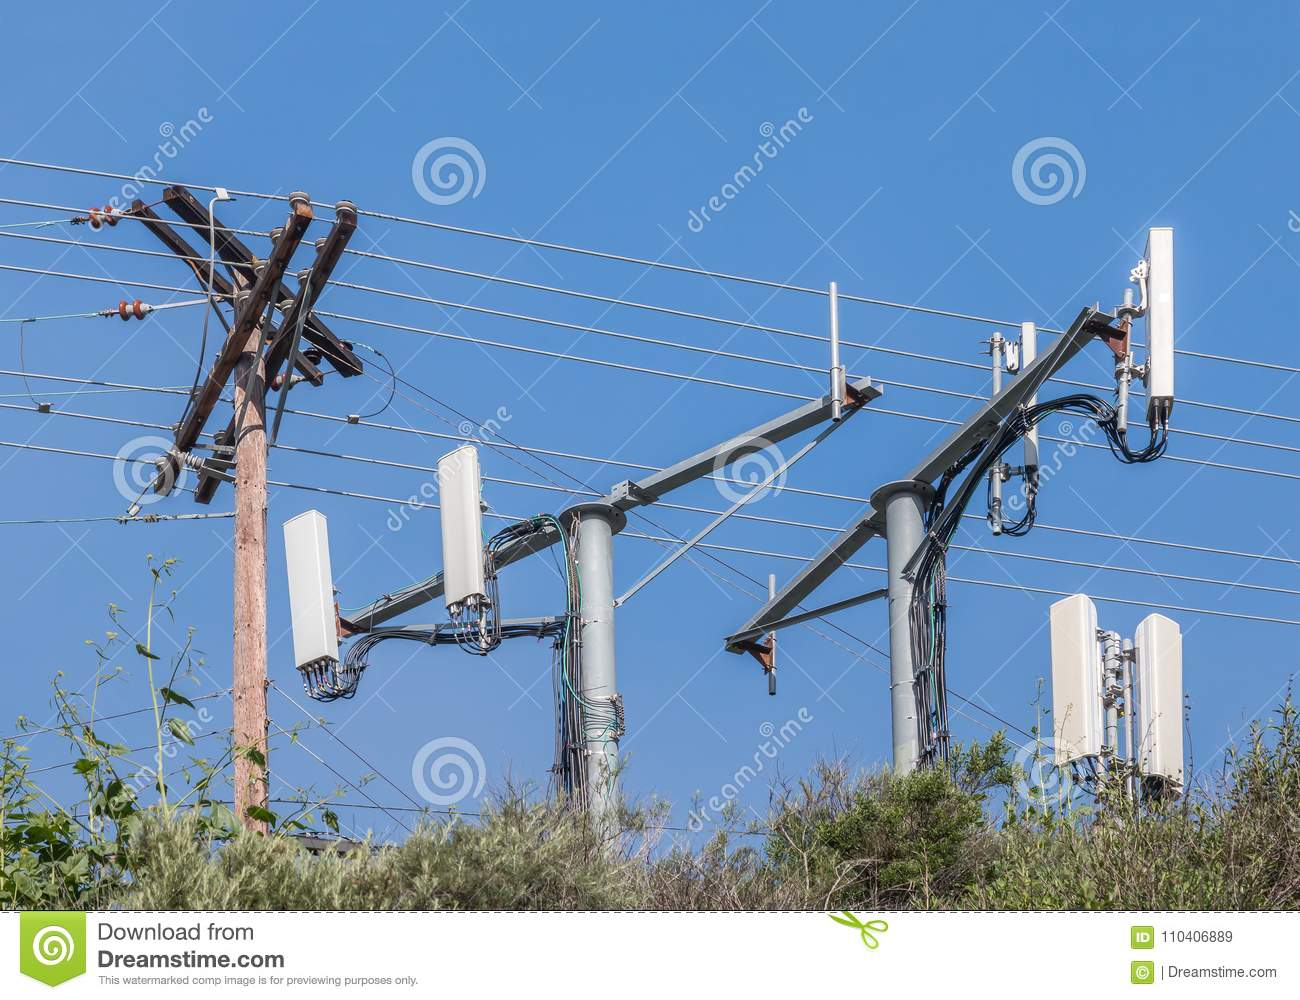 Cell Phone Monopole Towers And Power Pole  Stock Image